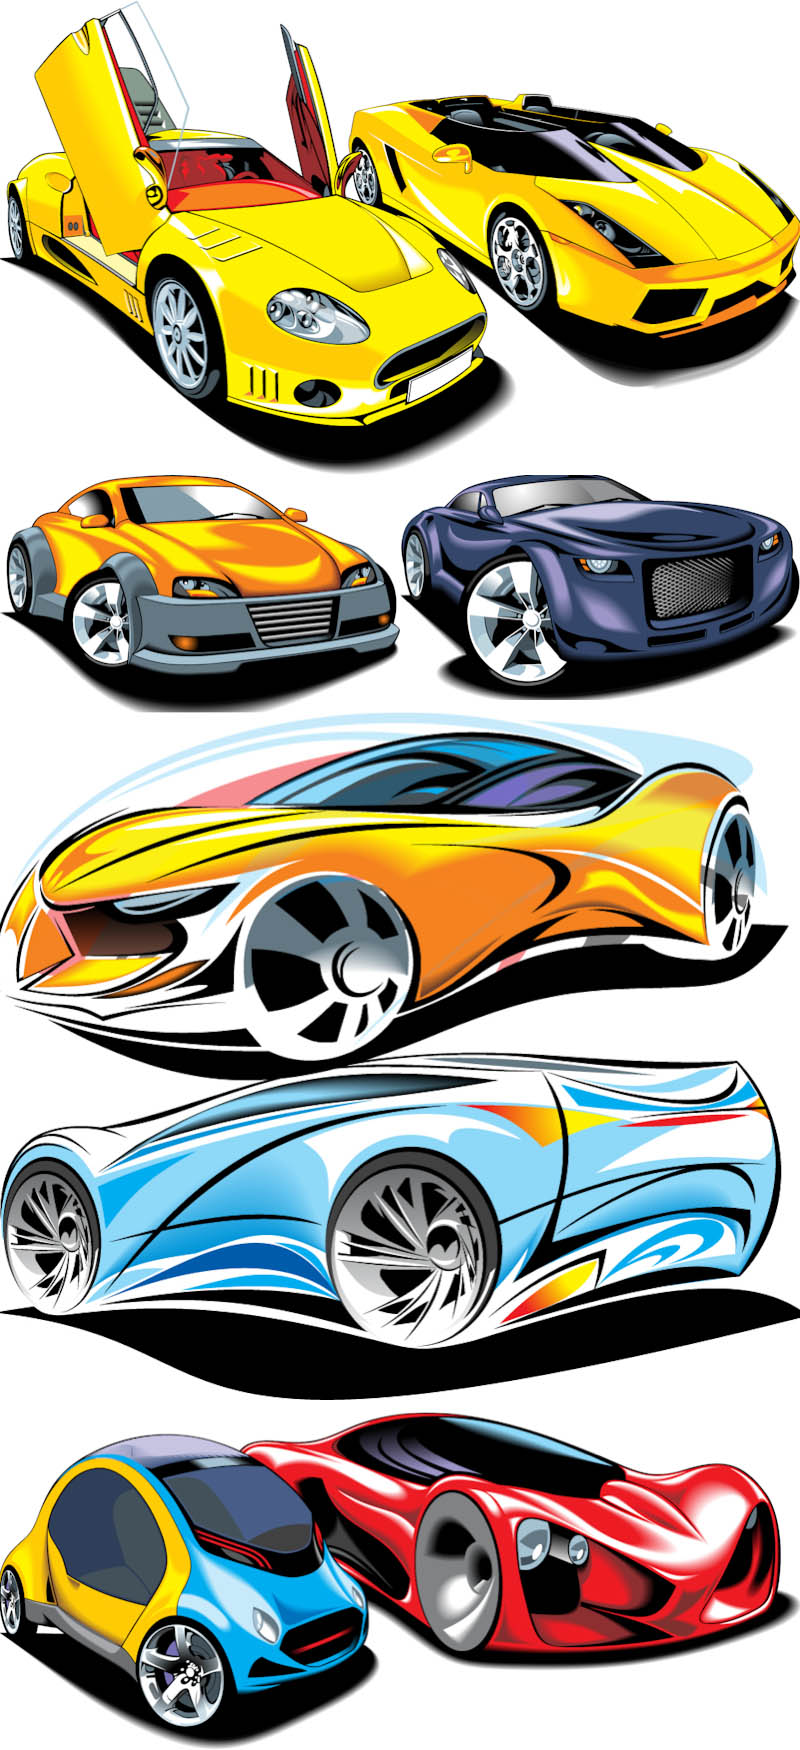 black sports car clipart clipart panda free clipart images. Black Bedroom Furniture Sets. Home Design Ideas